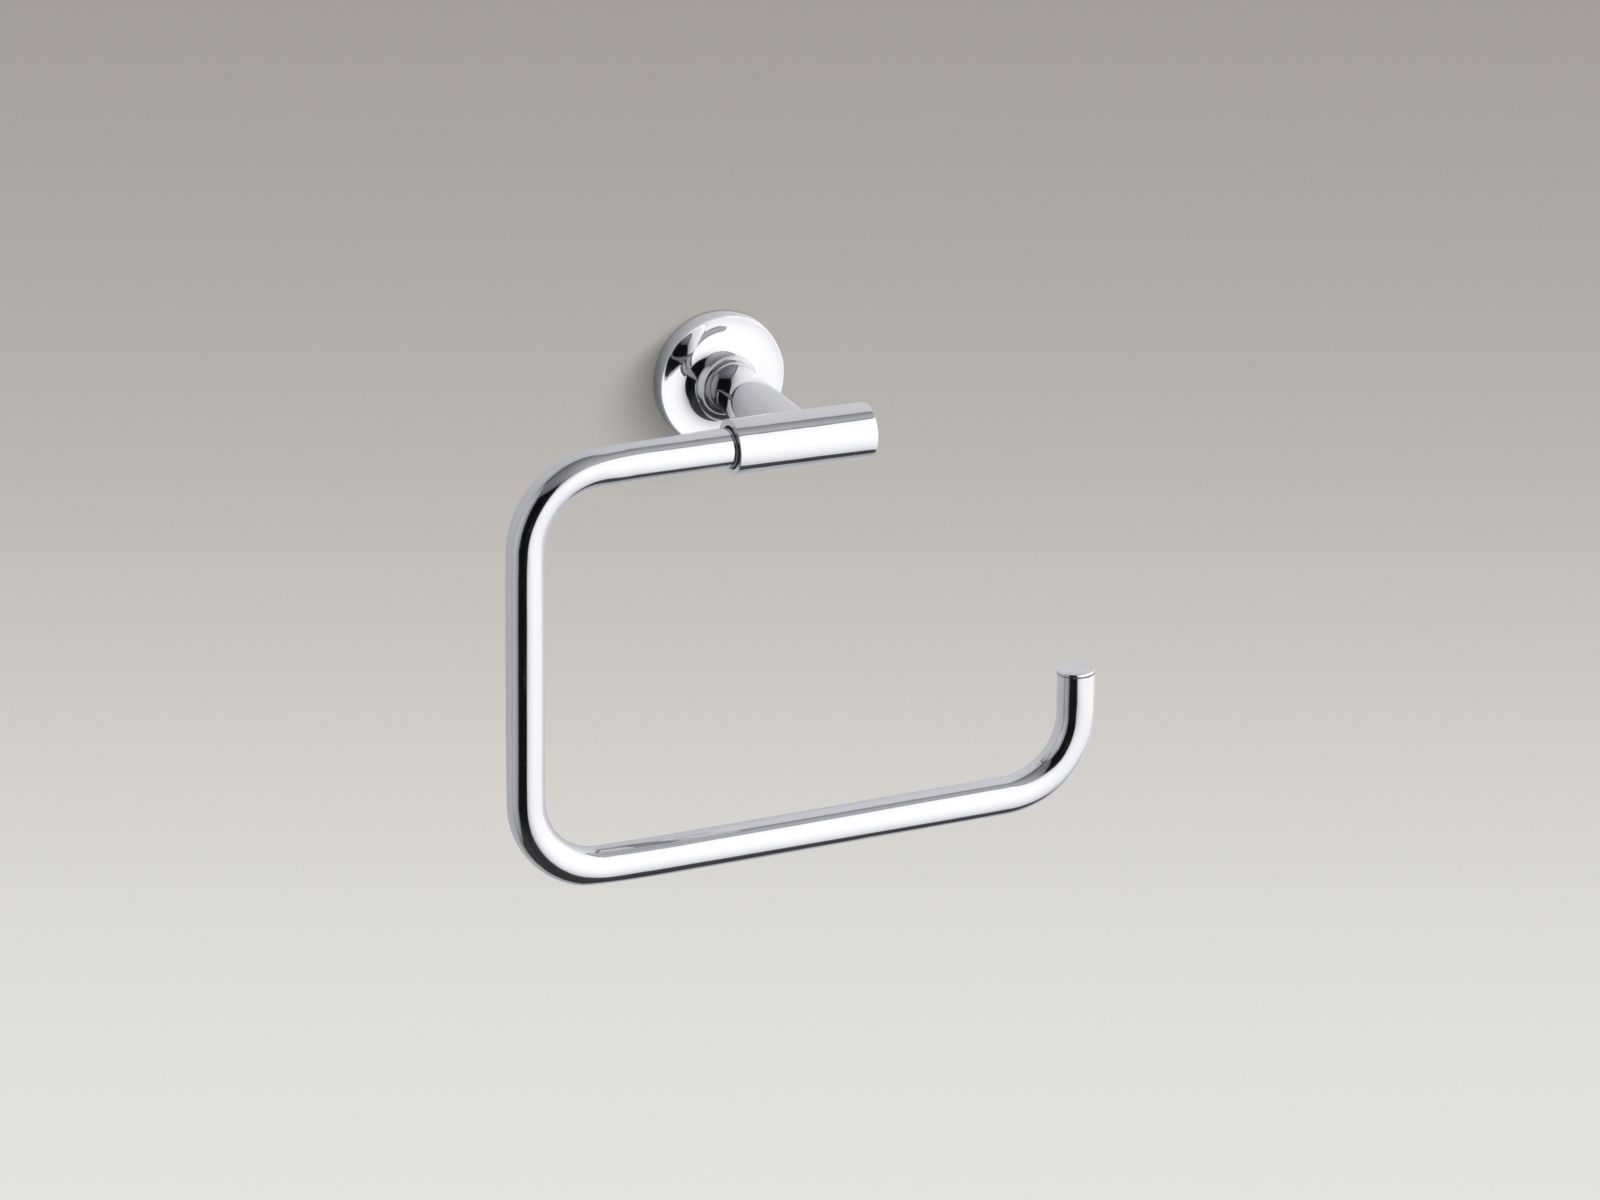 Kohler K-14441-CP Purist Towel Ring Polished Chrome